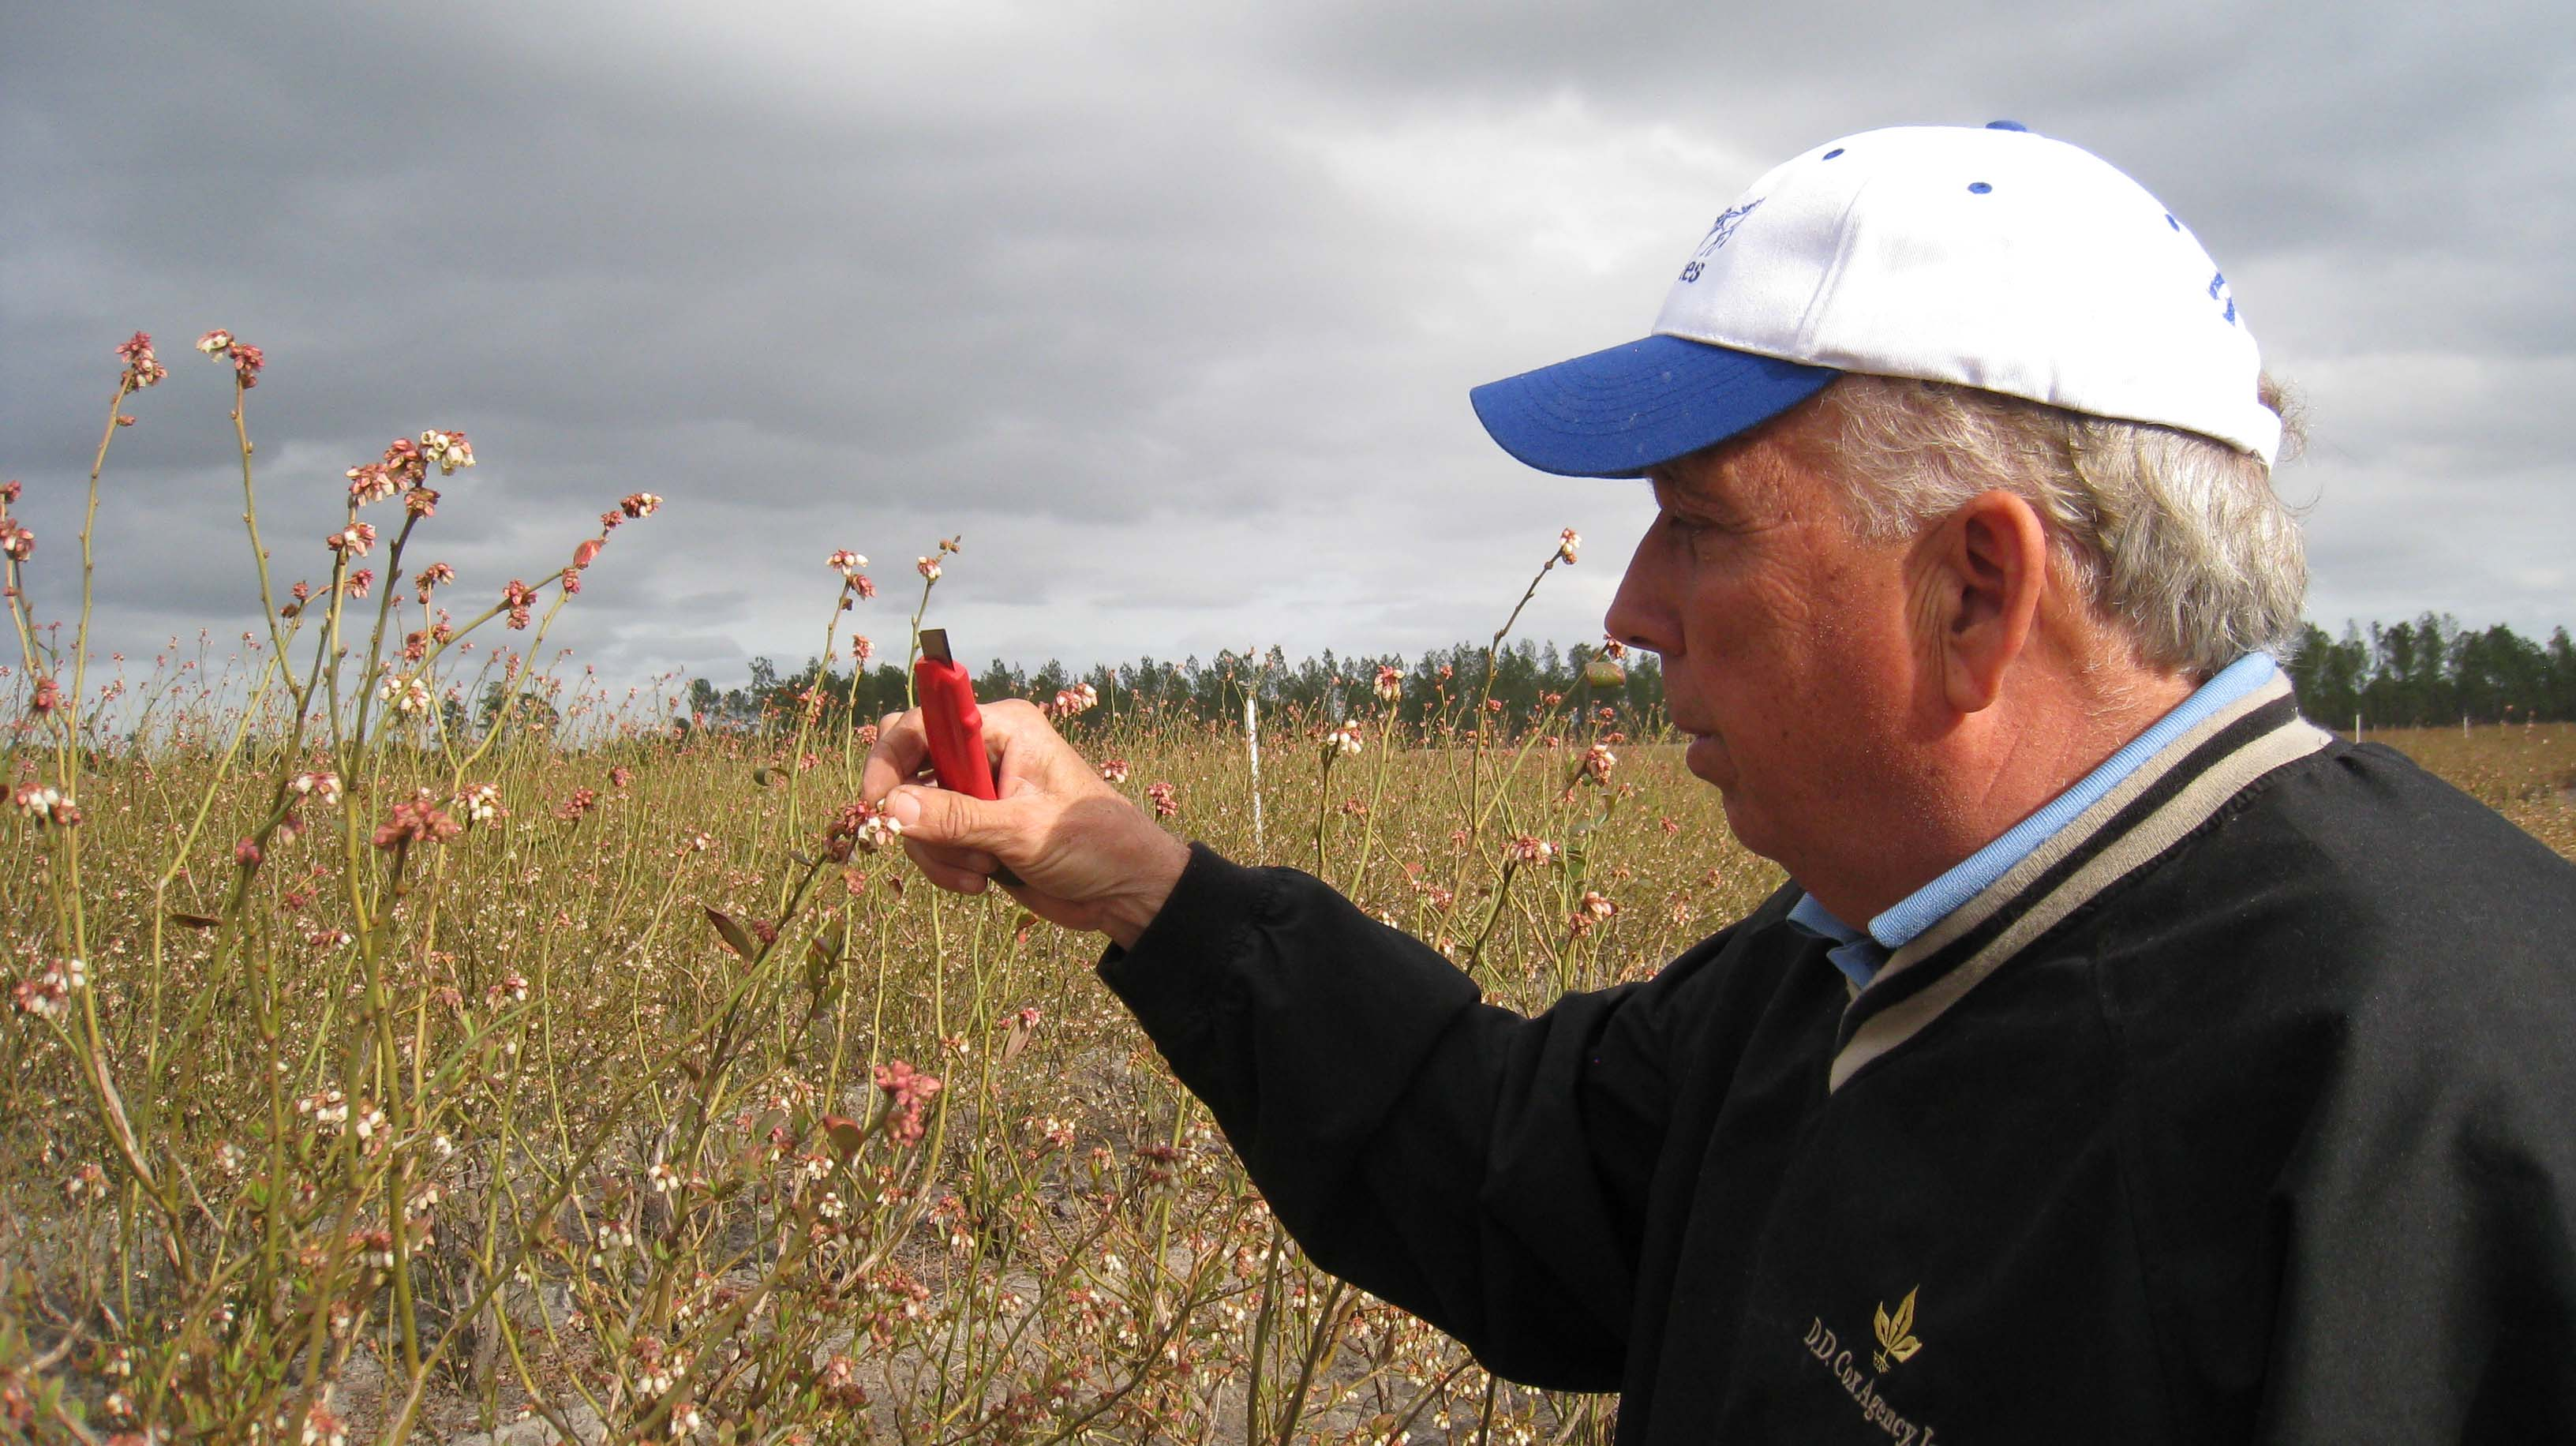 Bill inspects the buds for frost damage